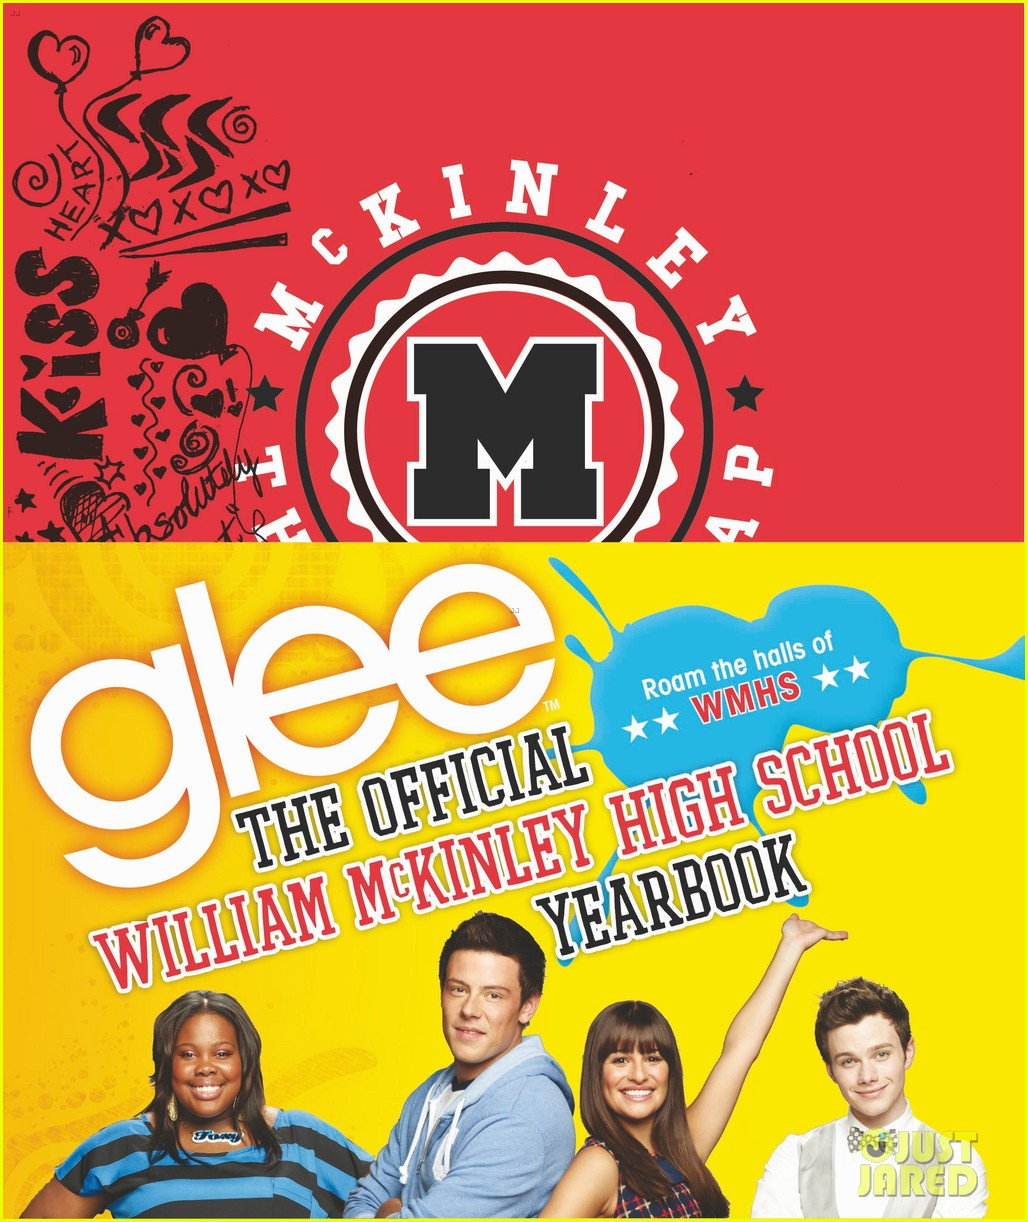 glee mckinley high yearbook exclusive inside look 04